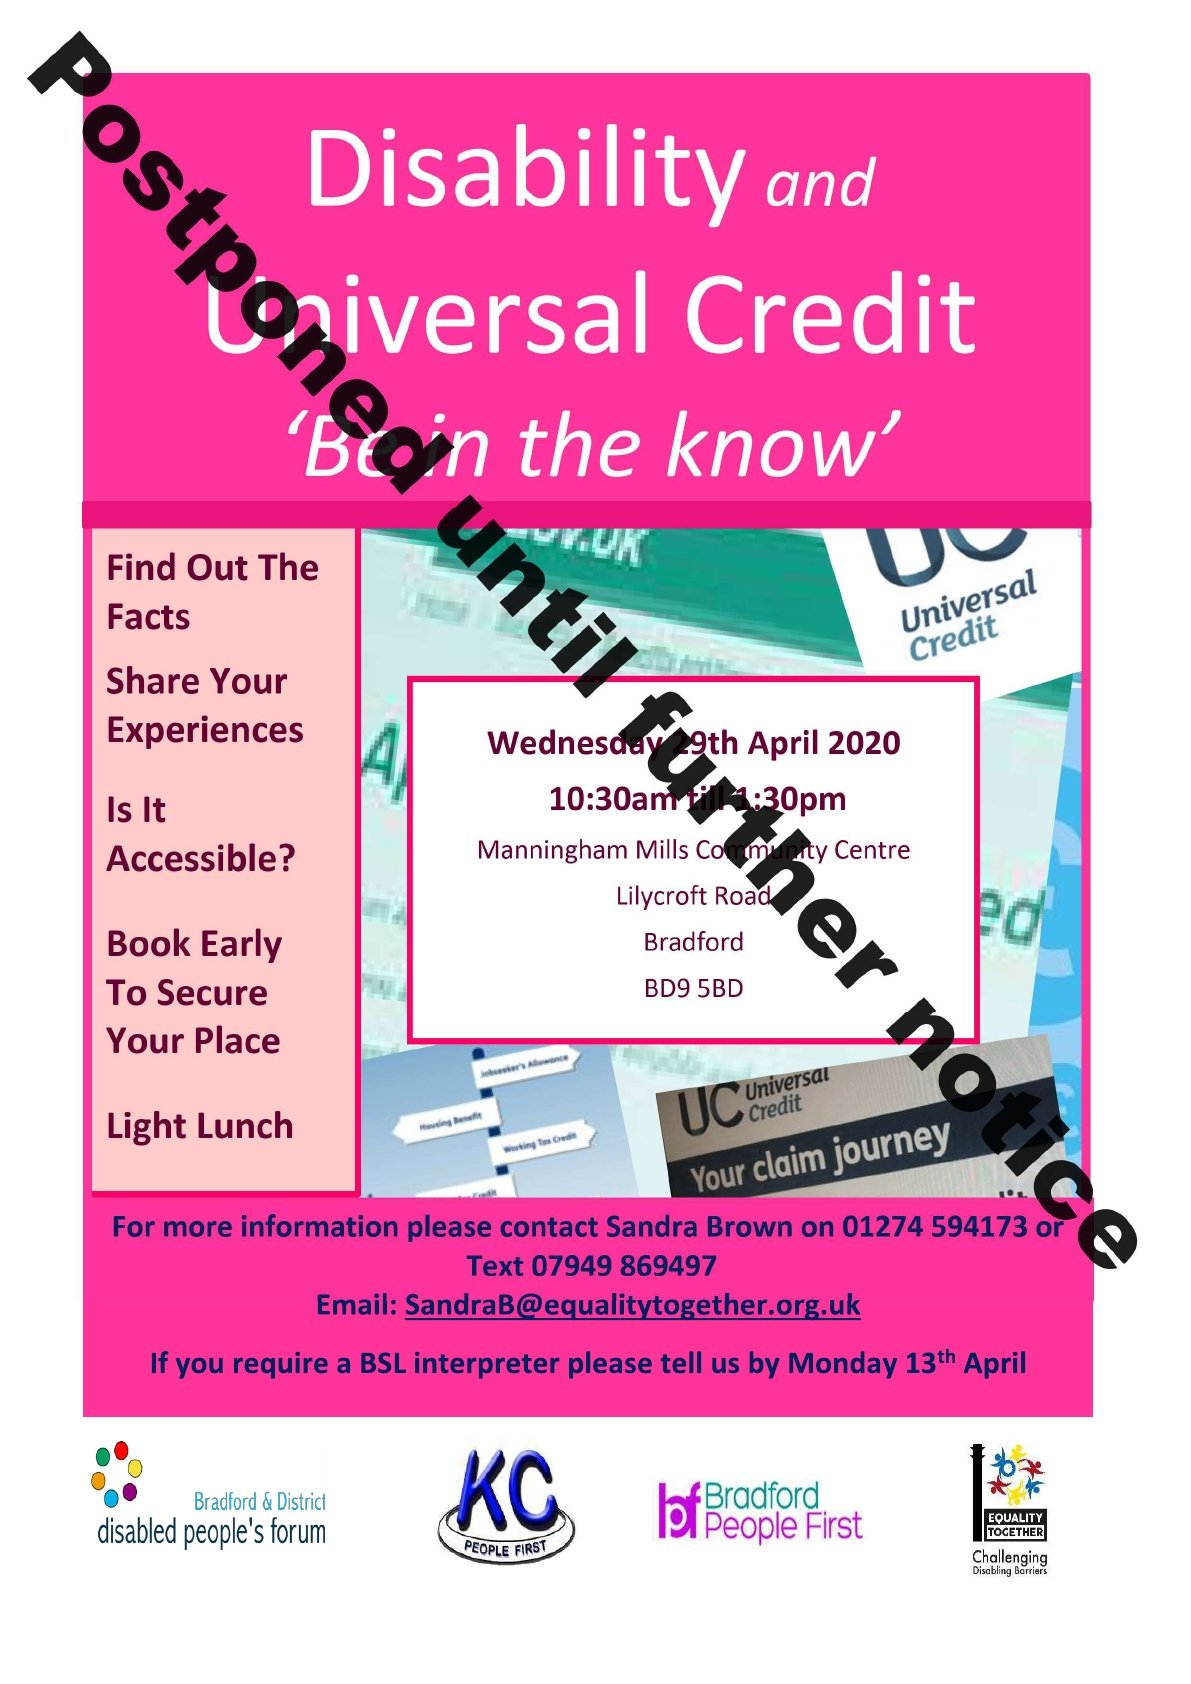 Disability and Universal Credit event on Wednesday 29th April – postponed until further notice